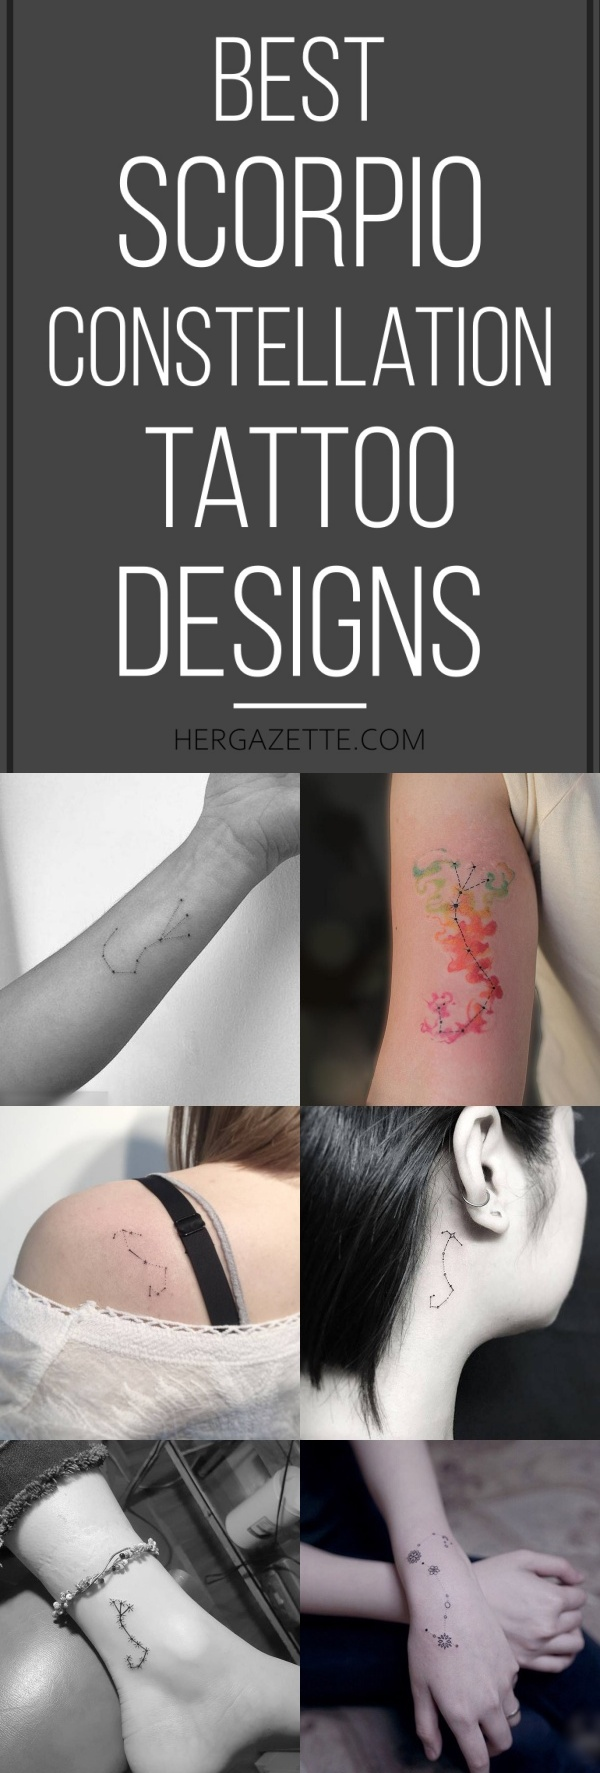 Best Scorpio Constellation Tattoo Designs